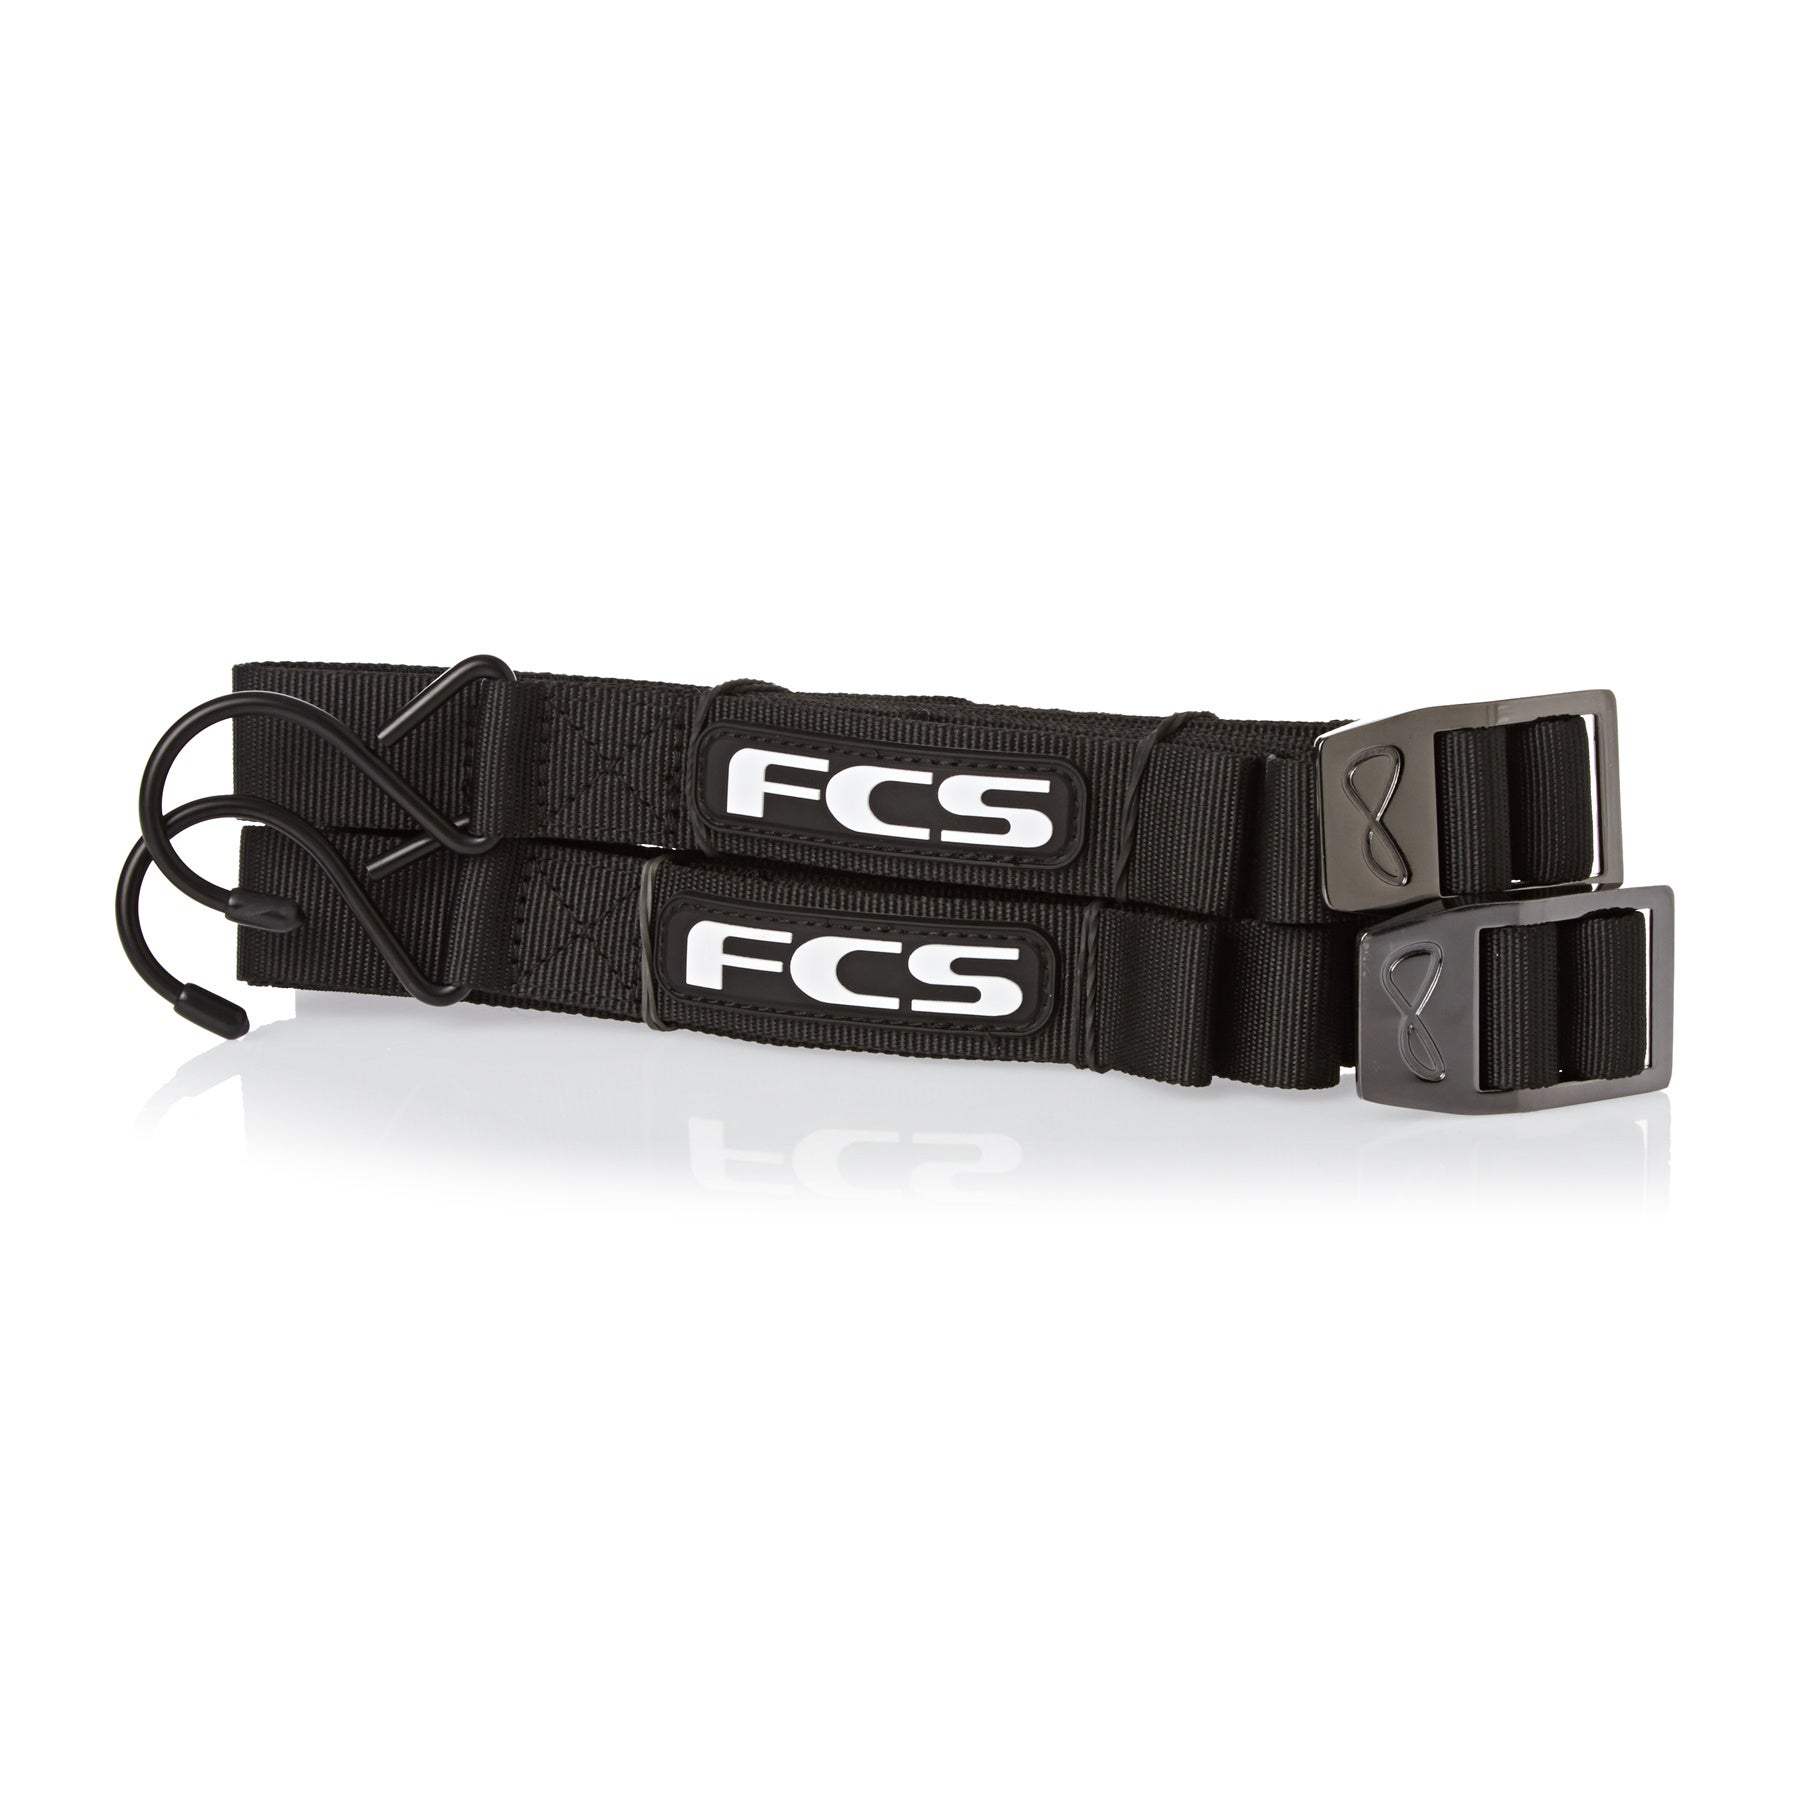 FCS Premium Bungy Lock Tie Downs - Black